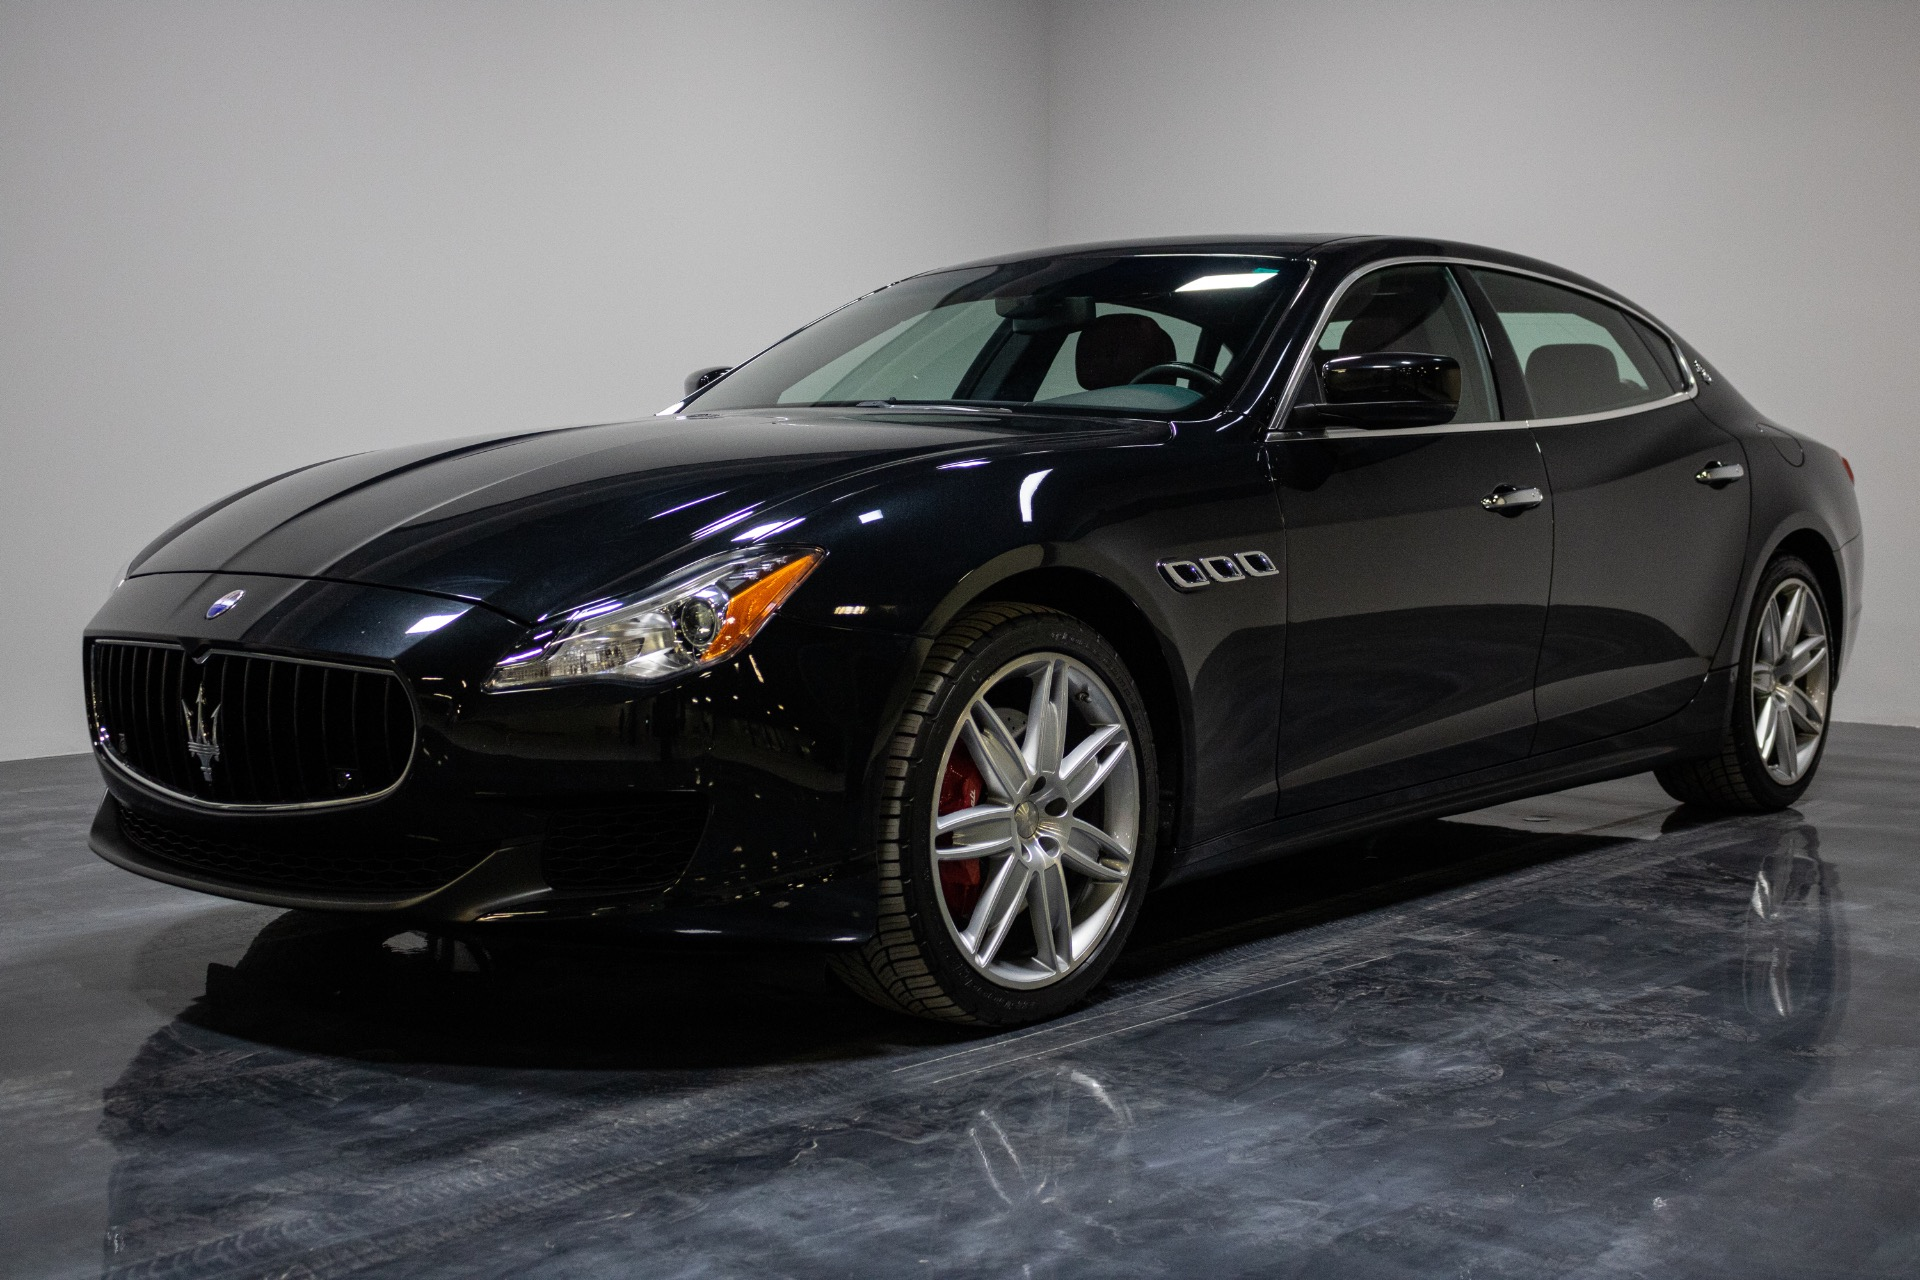 Used 2016 Maserati Quattroporte S Q4 Sedan 4D for sale Sold at Perfect Auto Collection in Akron OH 44310 1